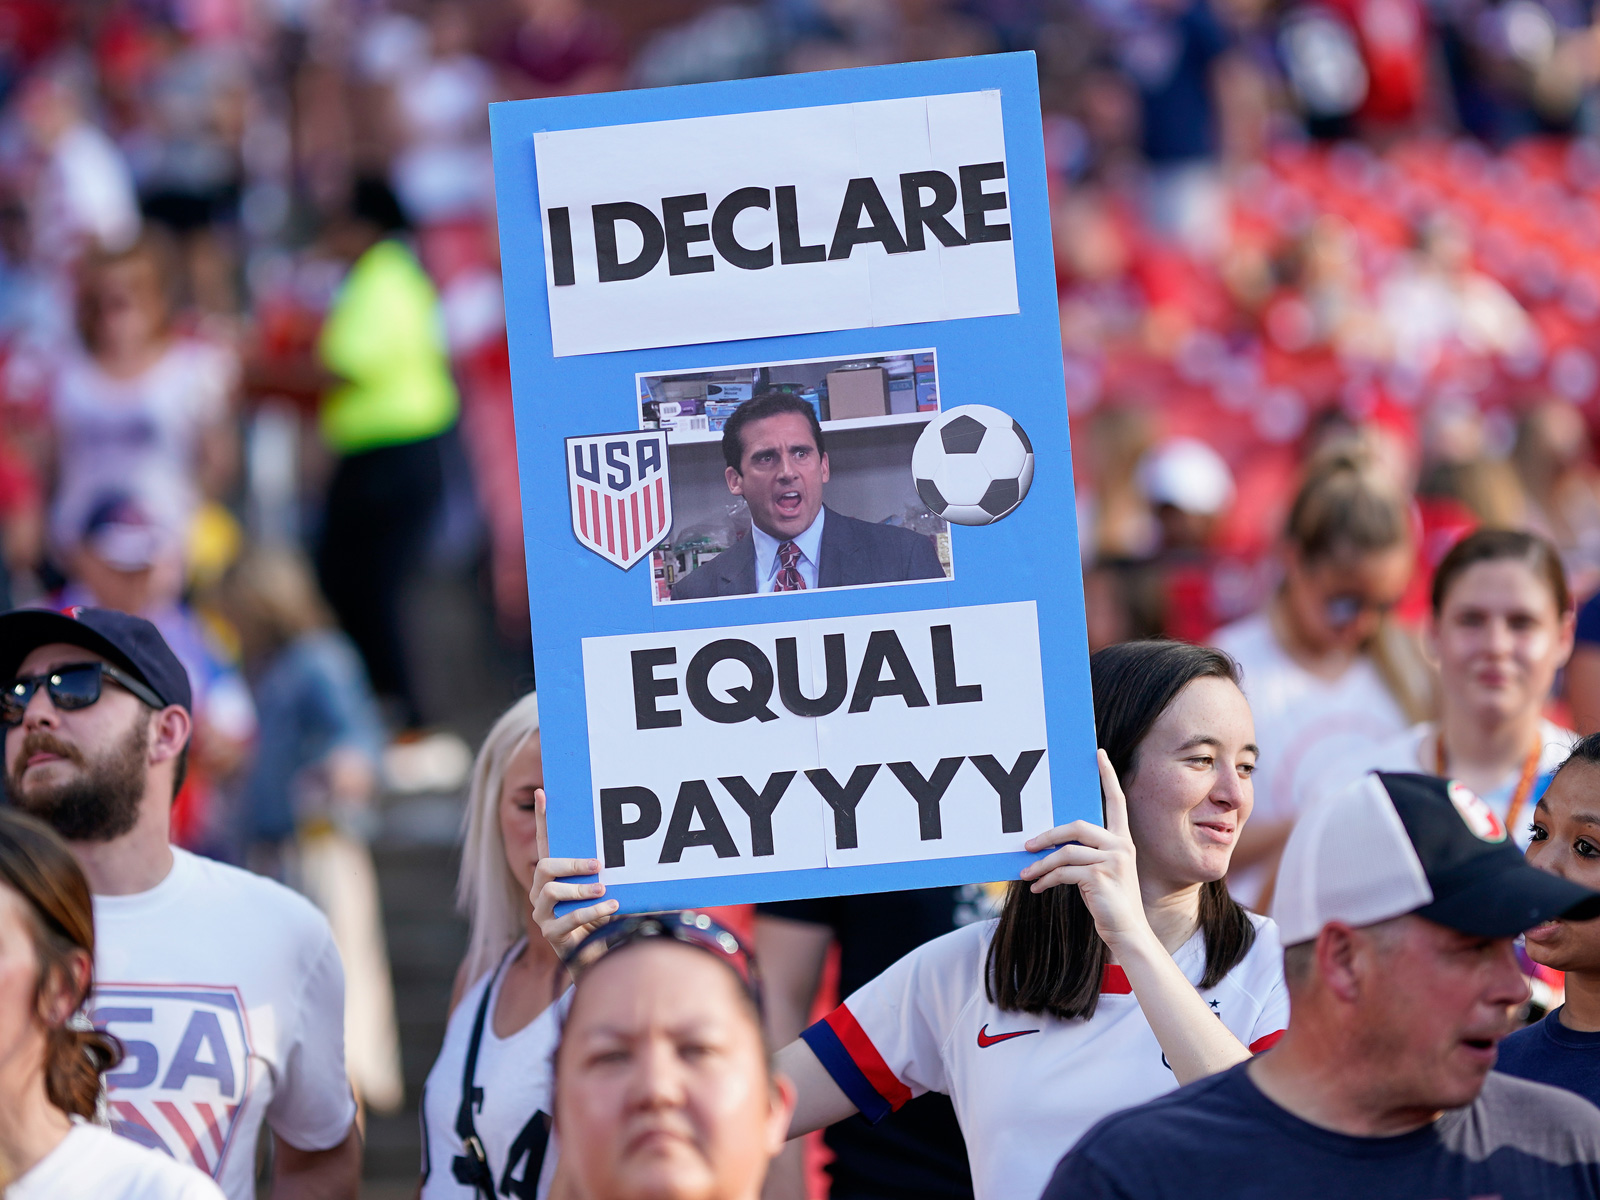 U.S. Soccer fans support the USWNT and its fight for equal pay